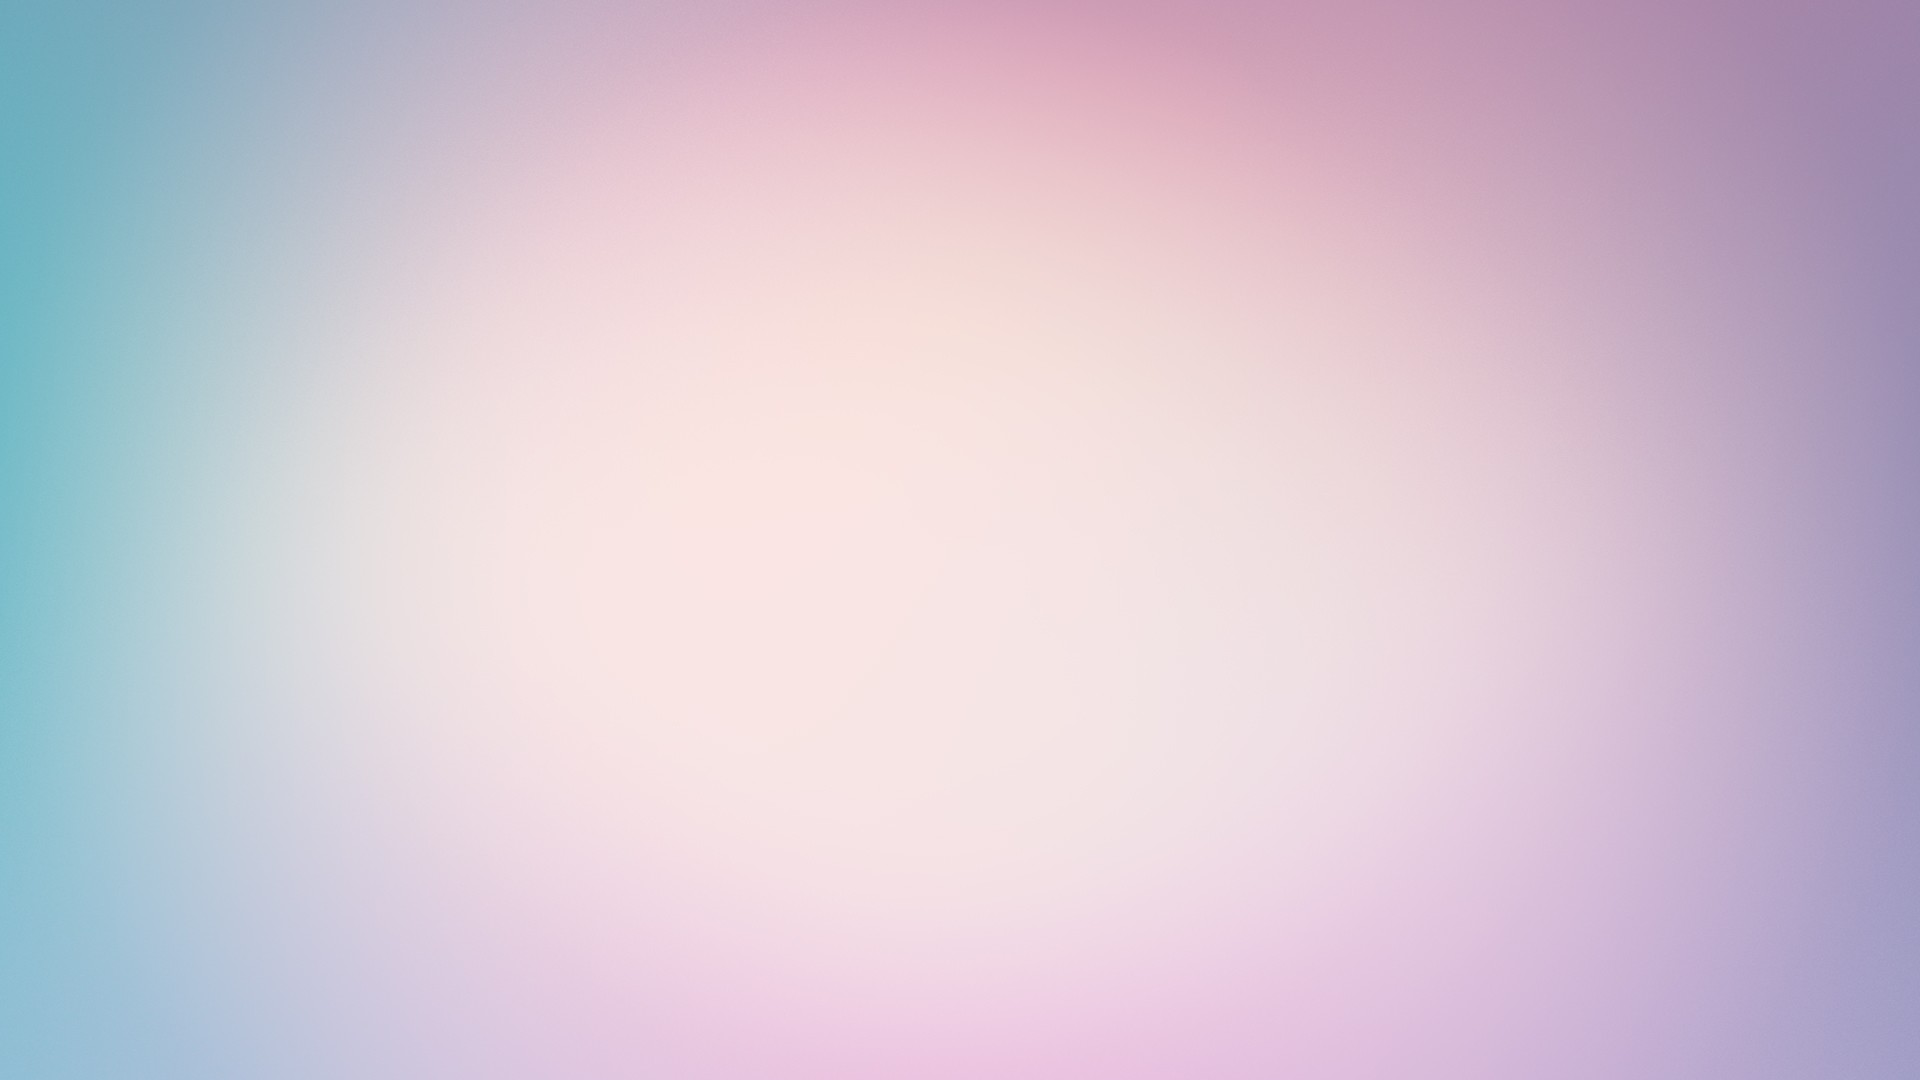 1920x1080 Light Pink Background Backgrounds Gradient 8301